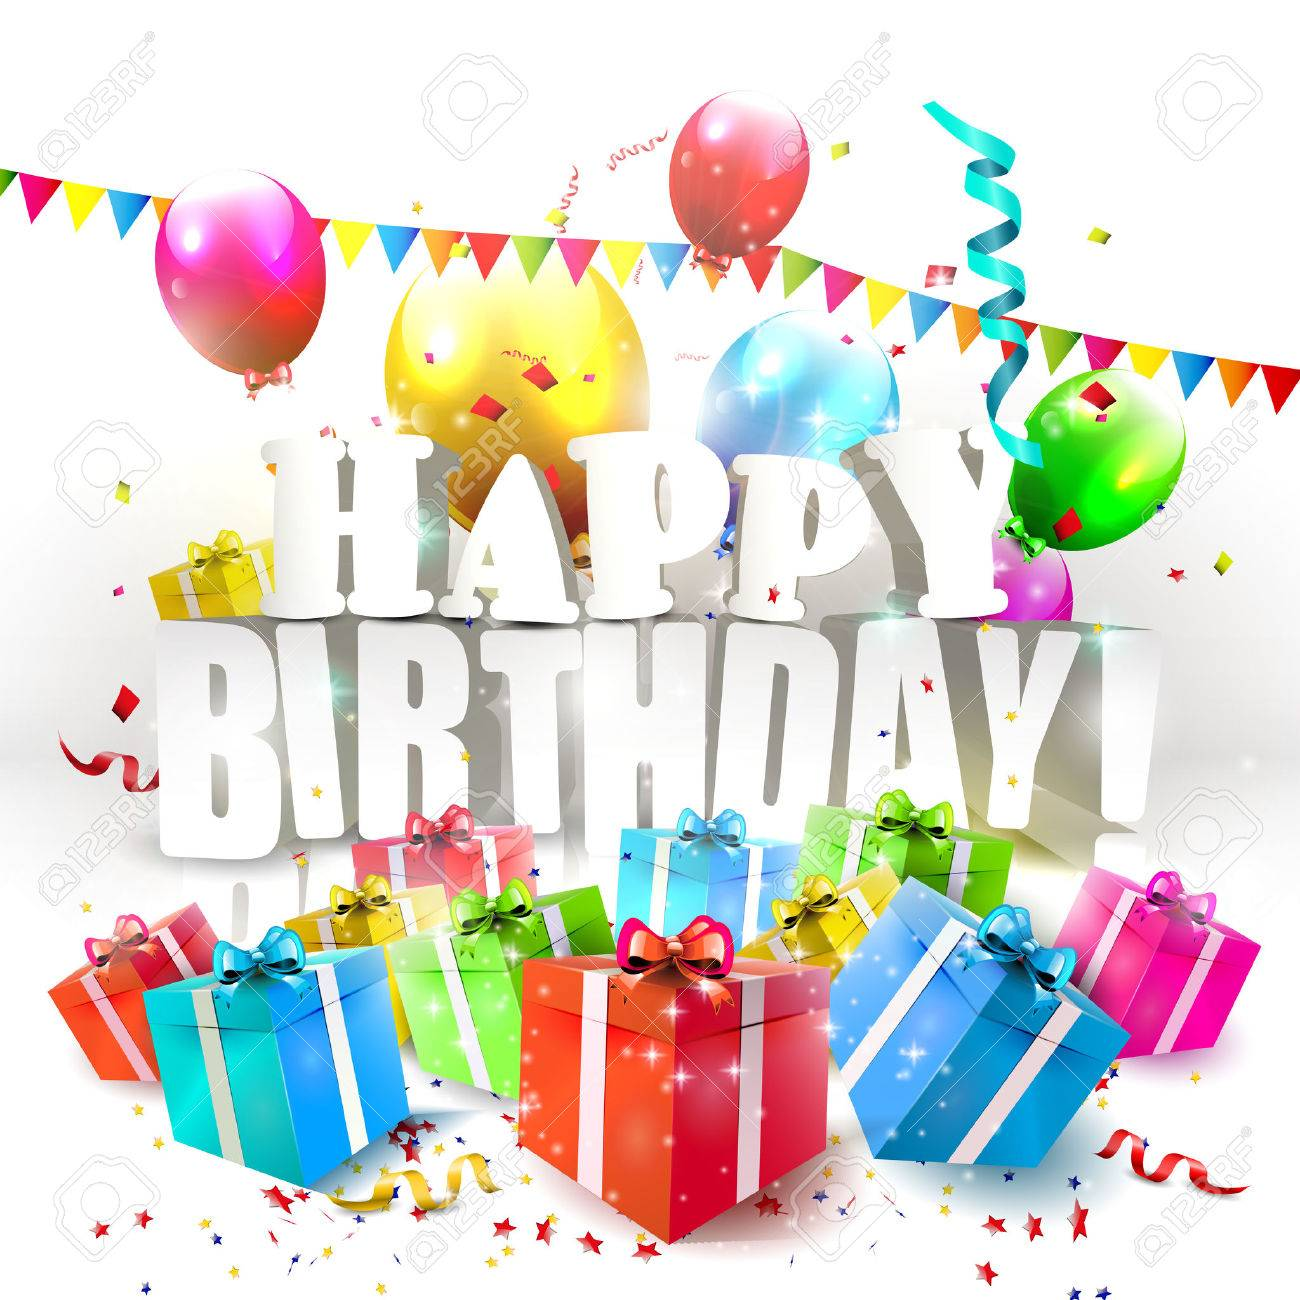 birthday poster images ; 29817012-modern-birthday-poster-with-colorful-gifts-and-happy-birthday-inscription